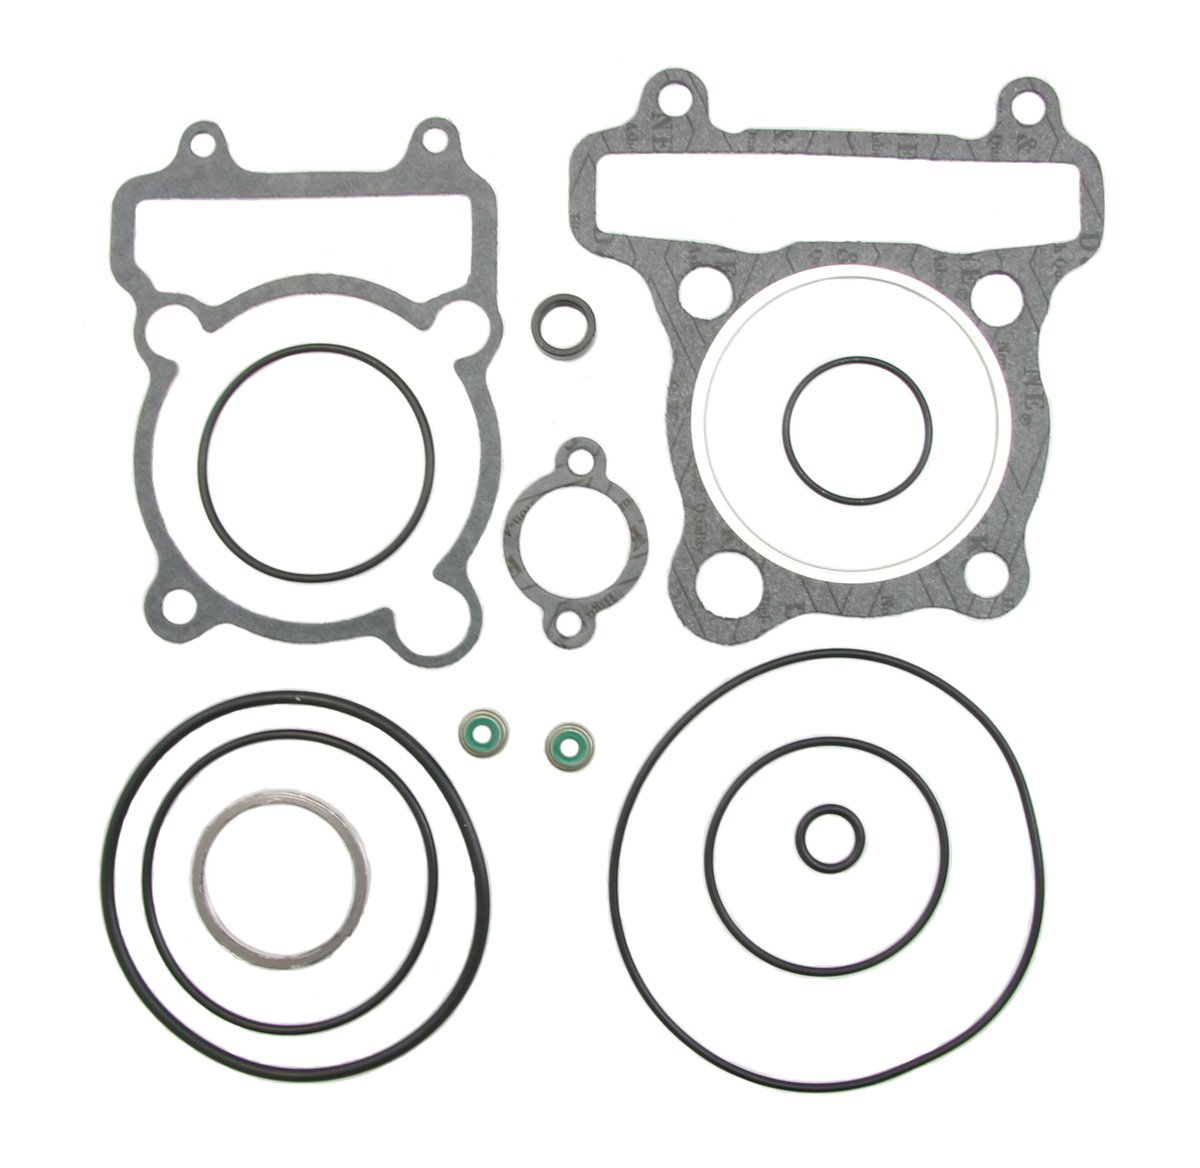 (NA-40015T) 70.95mm Diameter Top End Gasket Set, Fits